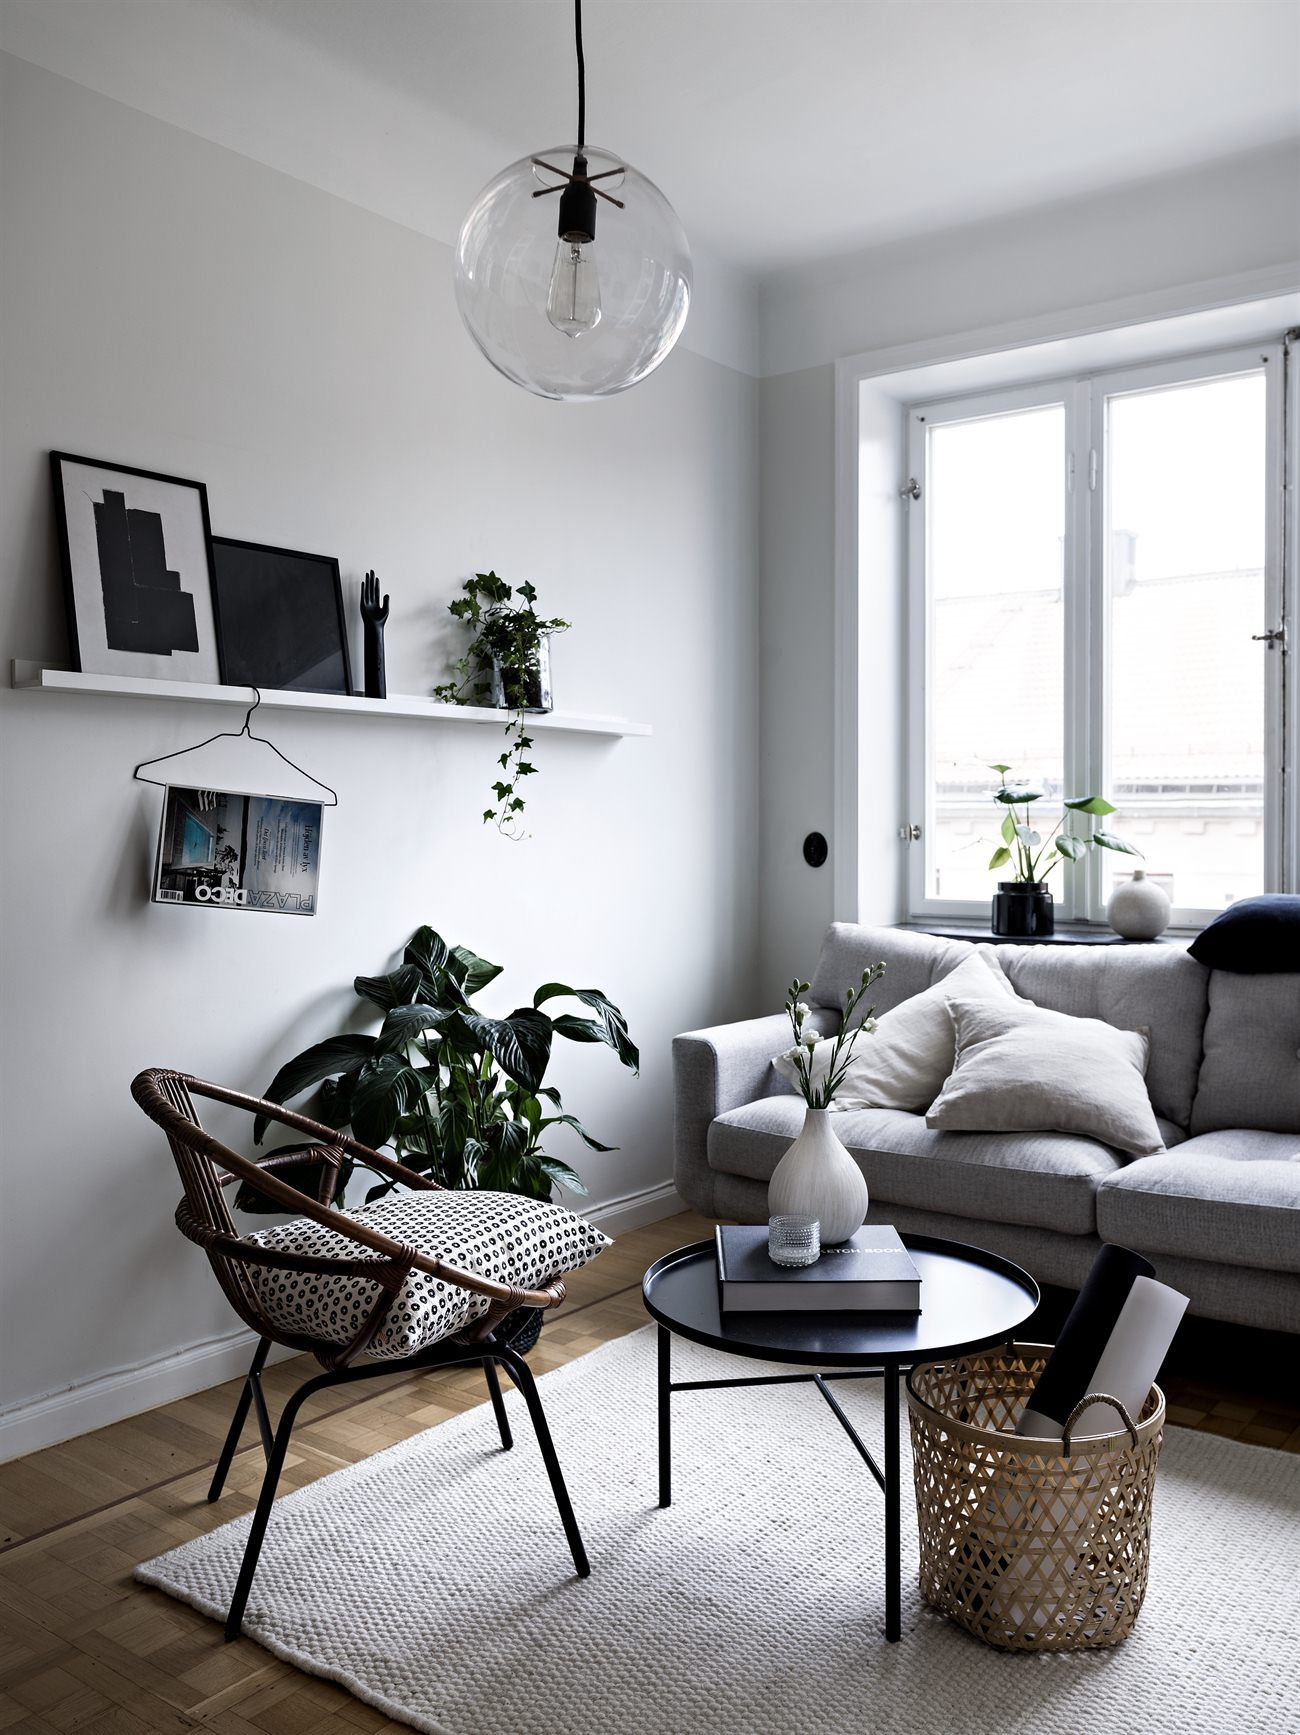 30 Minimalist Living Room Ideas & Inspiration to Make the Most of Your Space